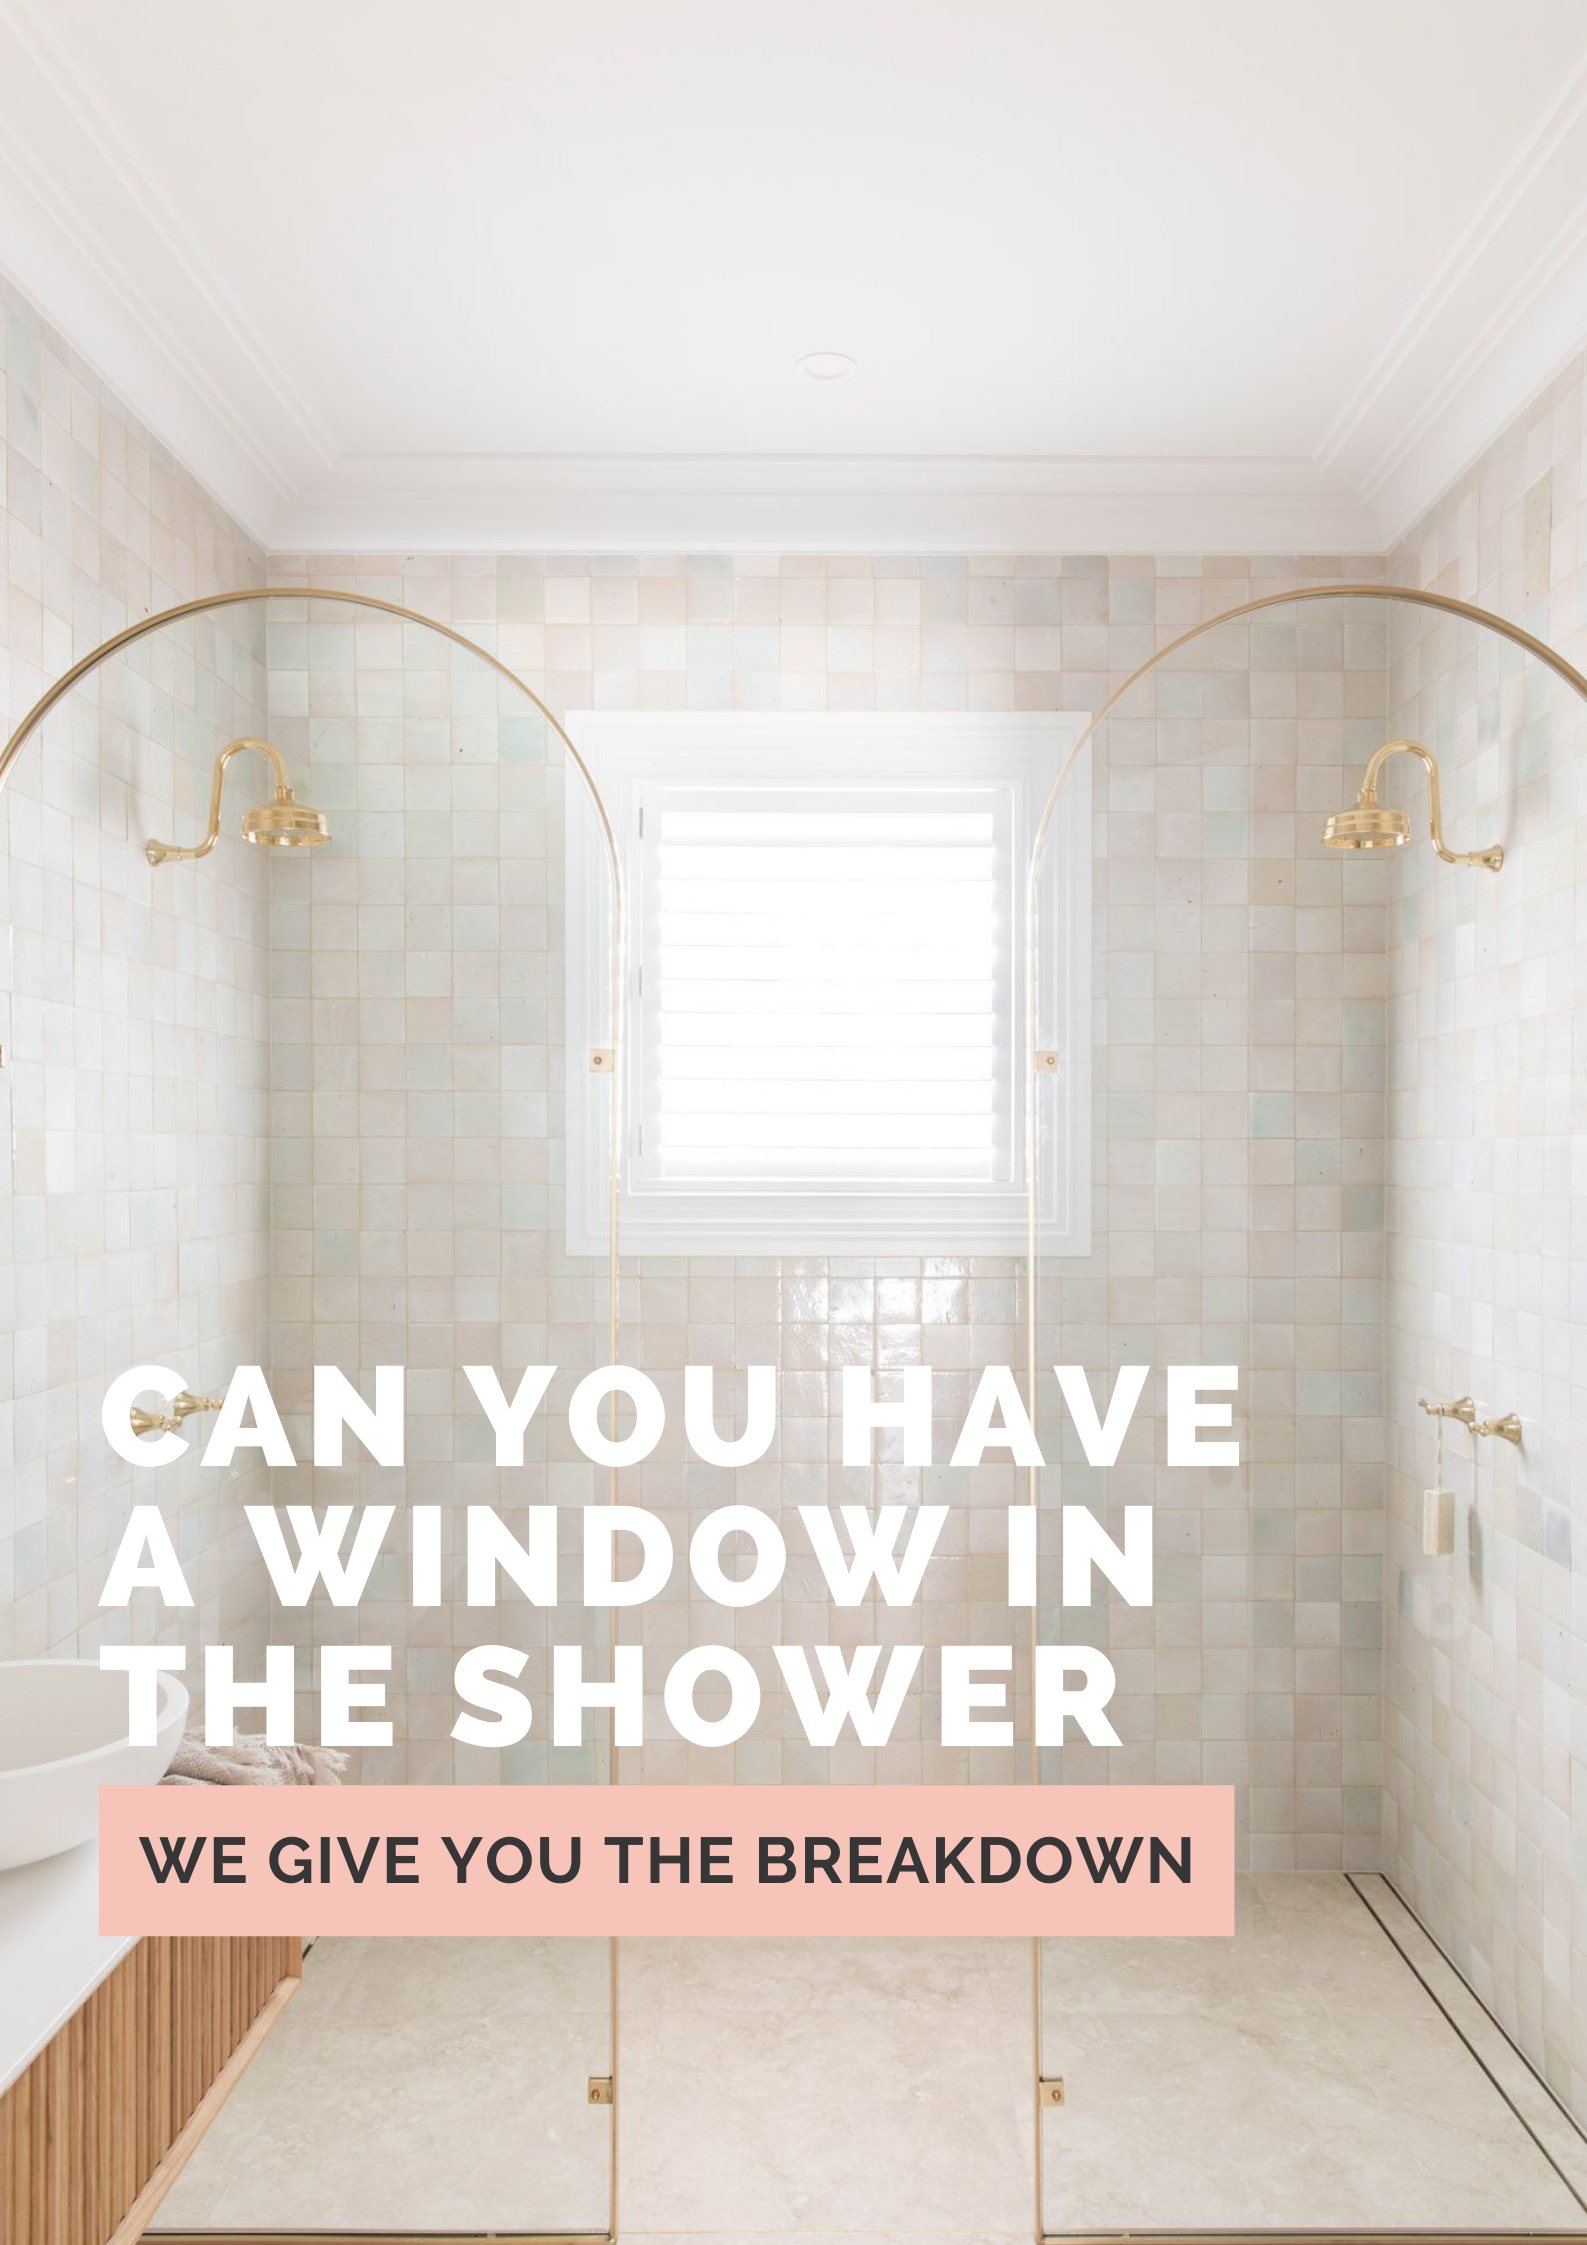 Can you have a window in the shower